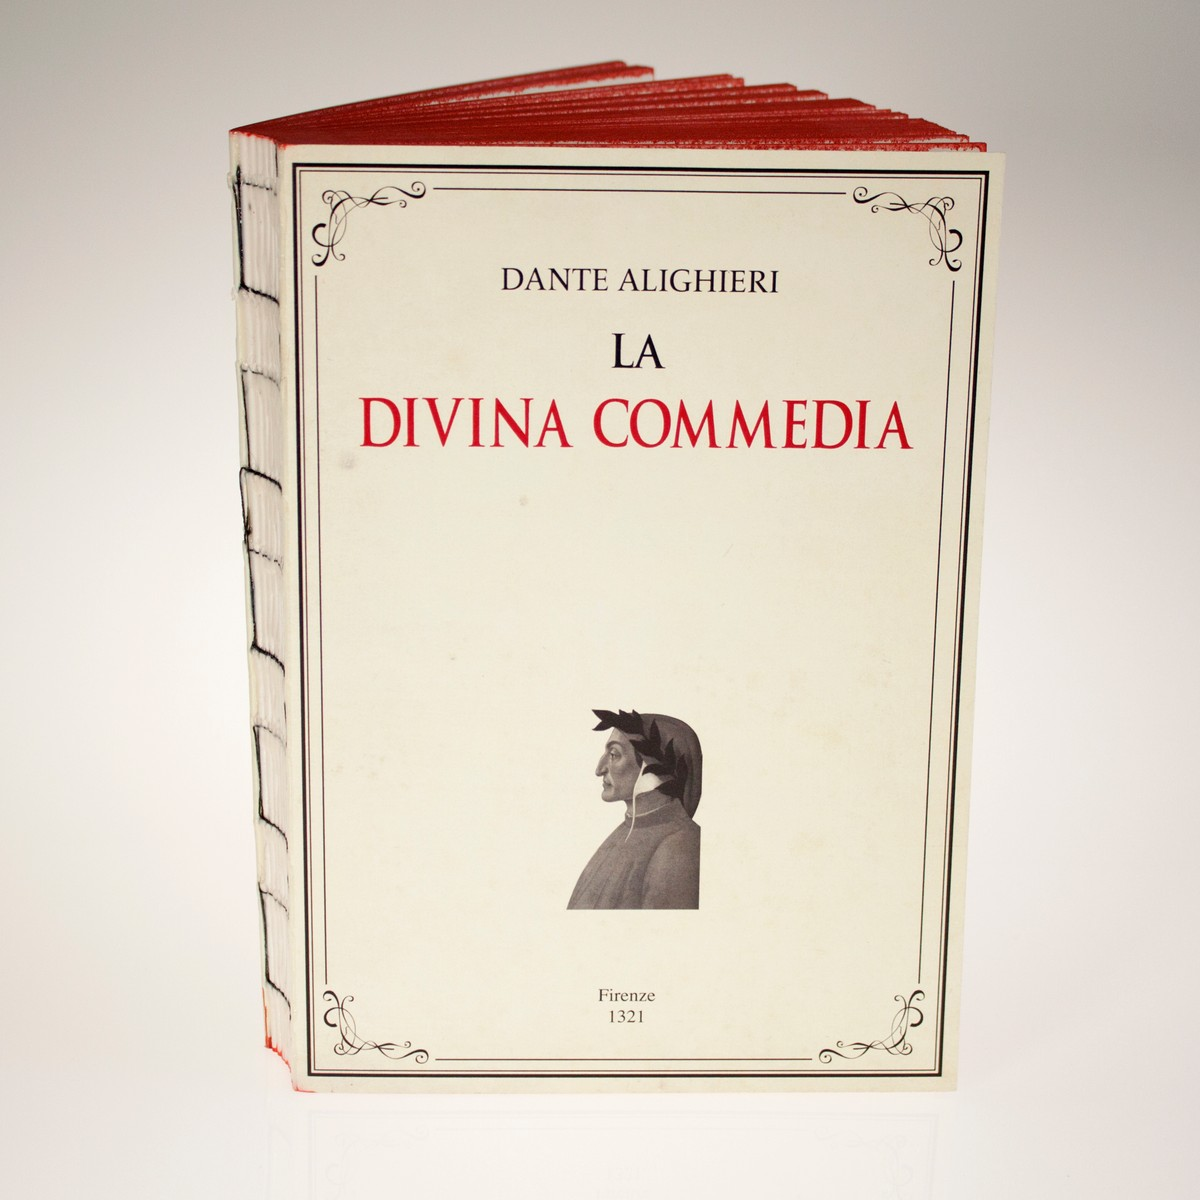 Photo of La Divina Commedia Notebook